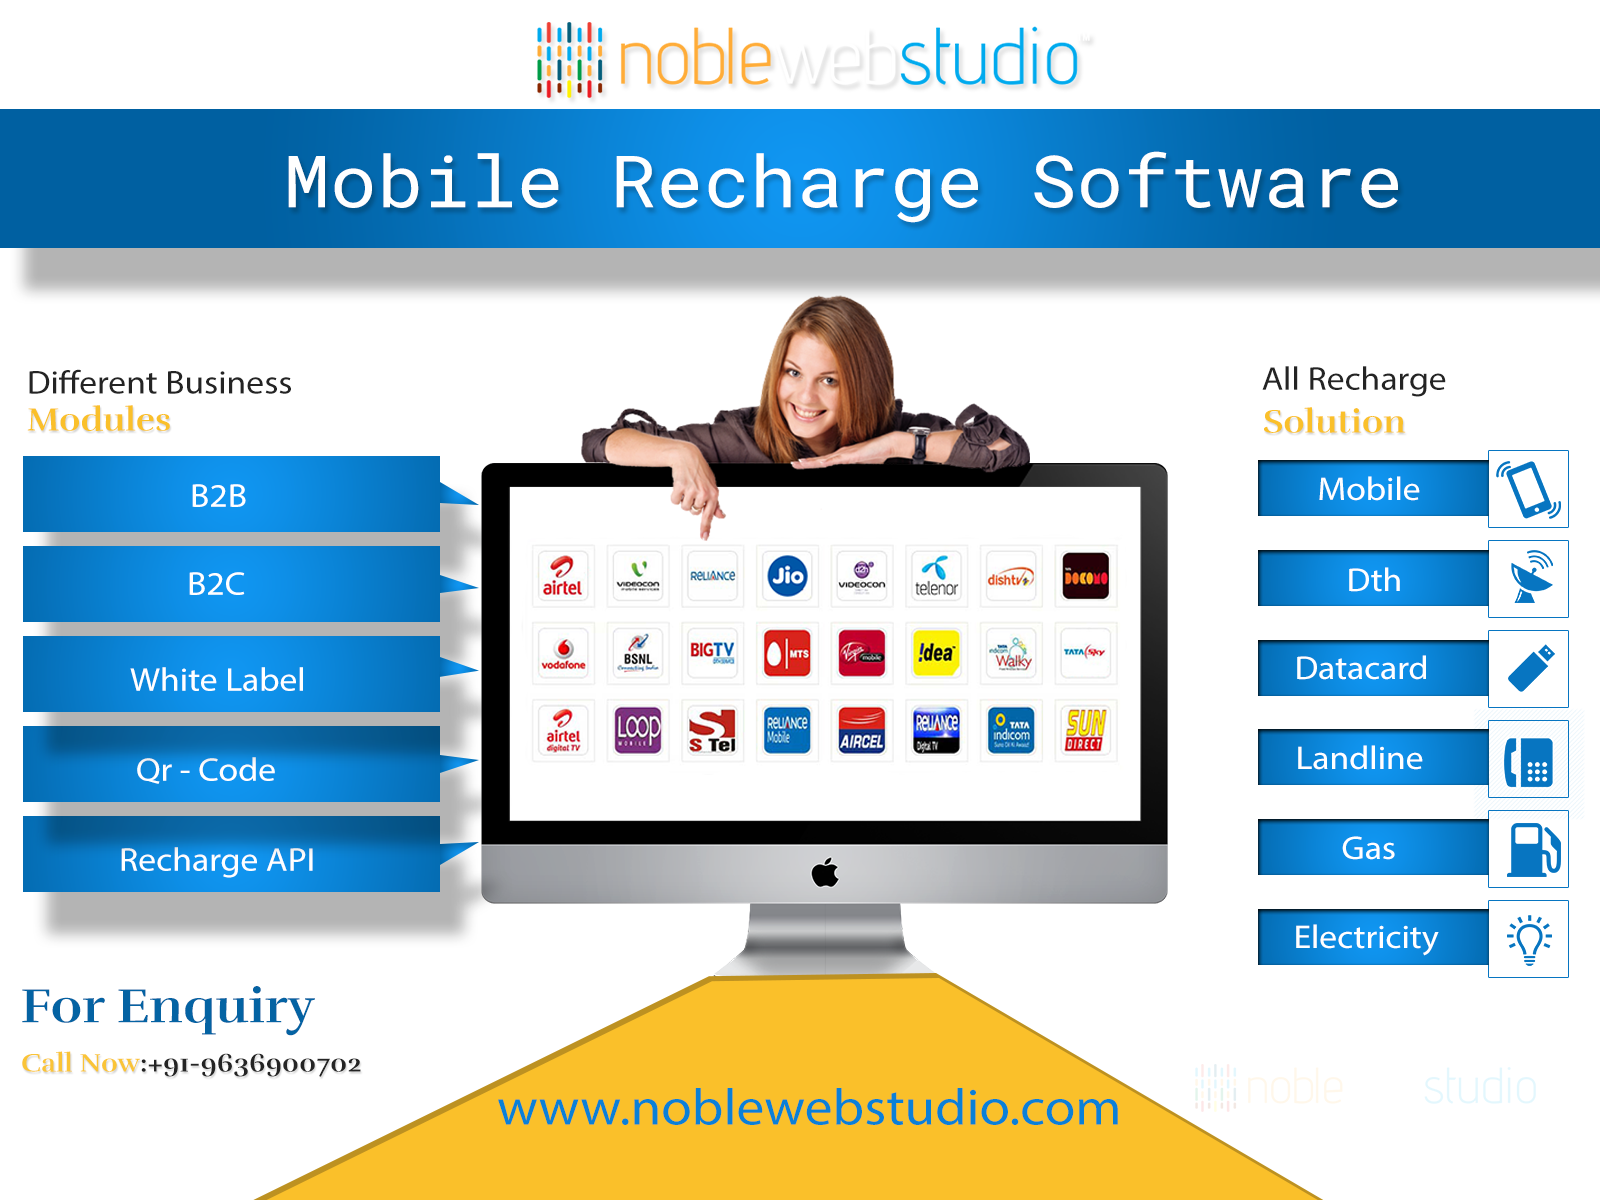 Skyrocket your Recharge business with cloud based mobile